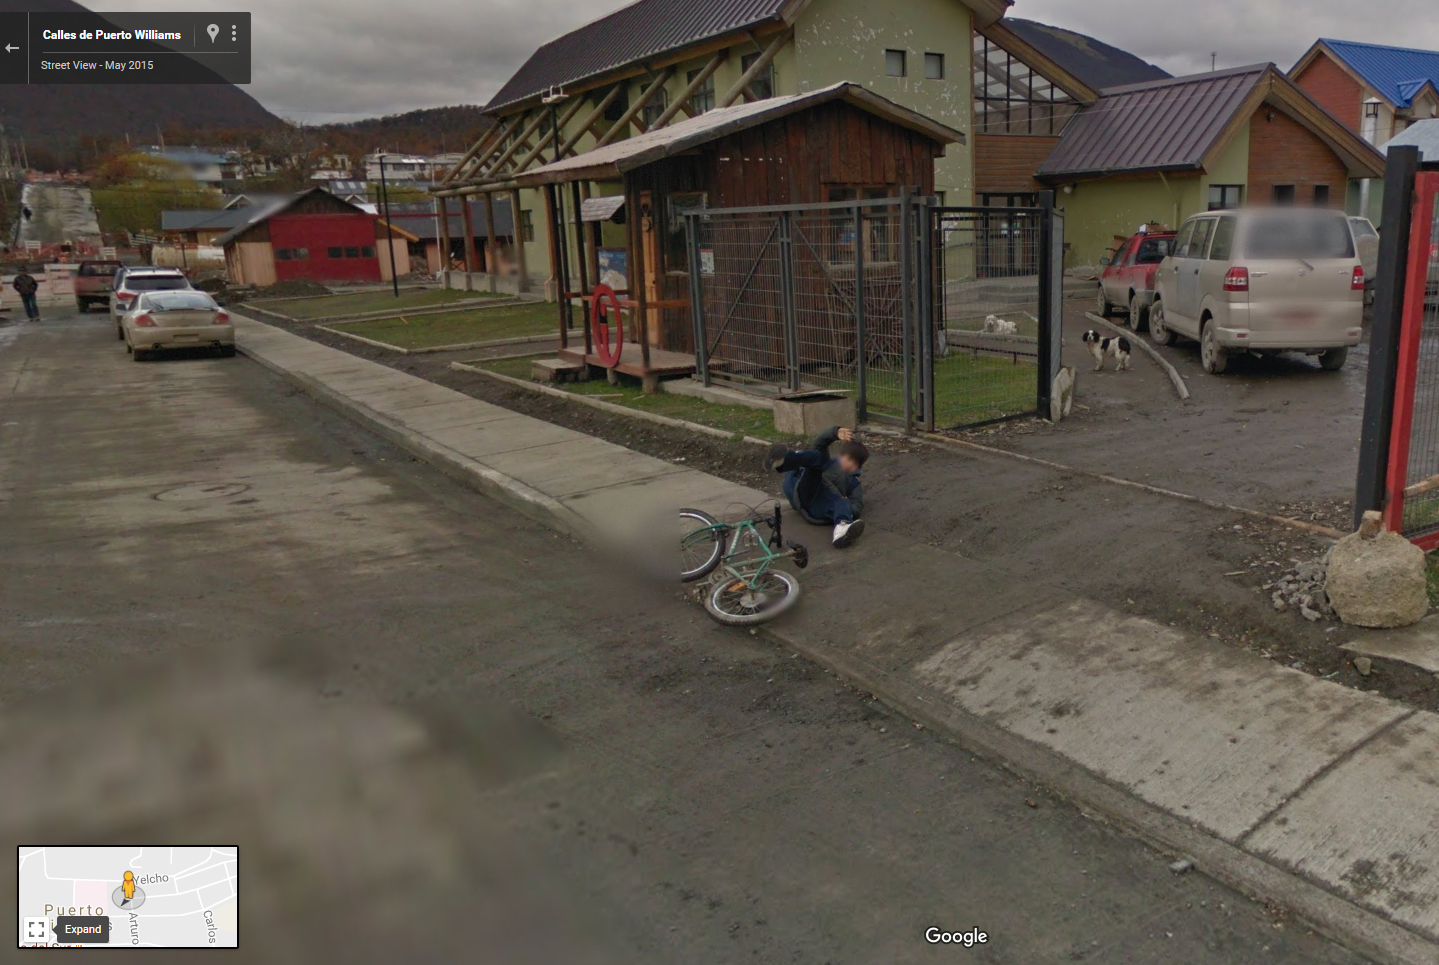 Google Street View Chile Captures a Bike Fail